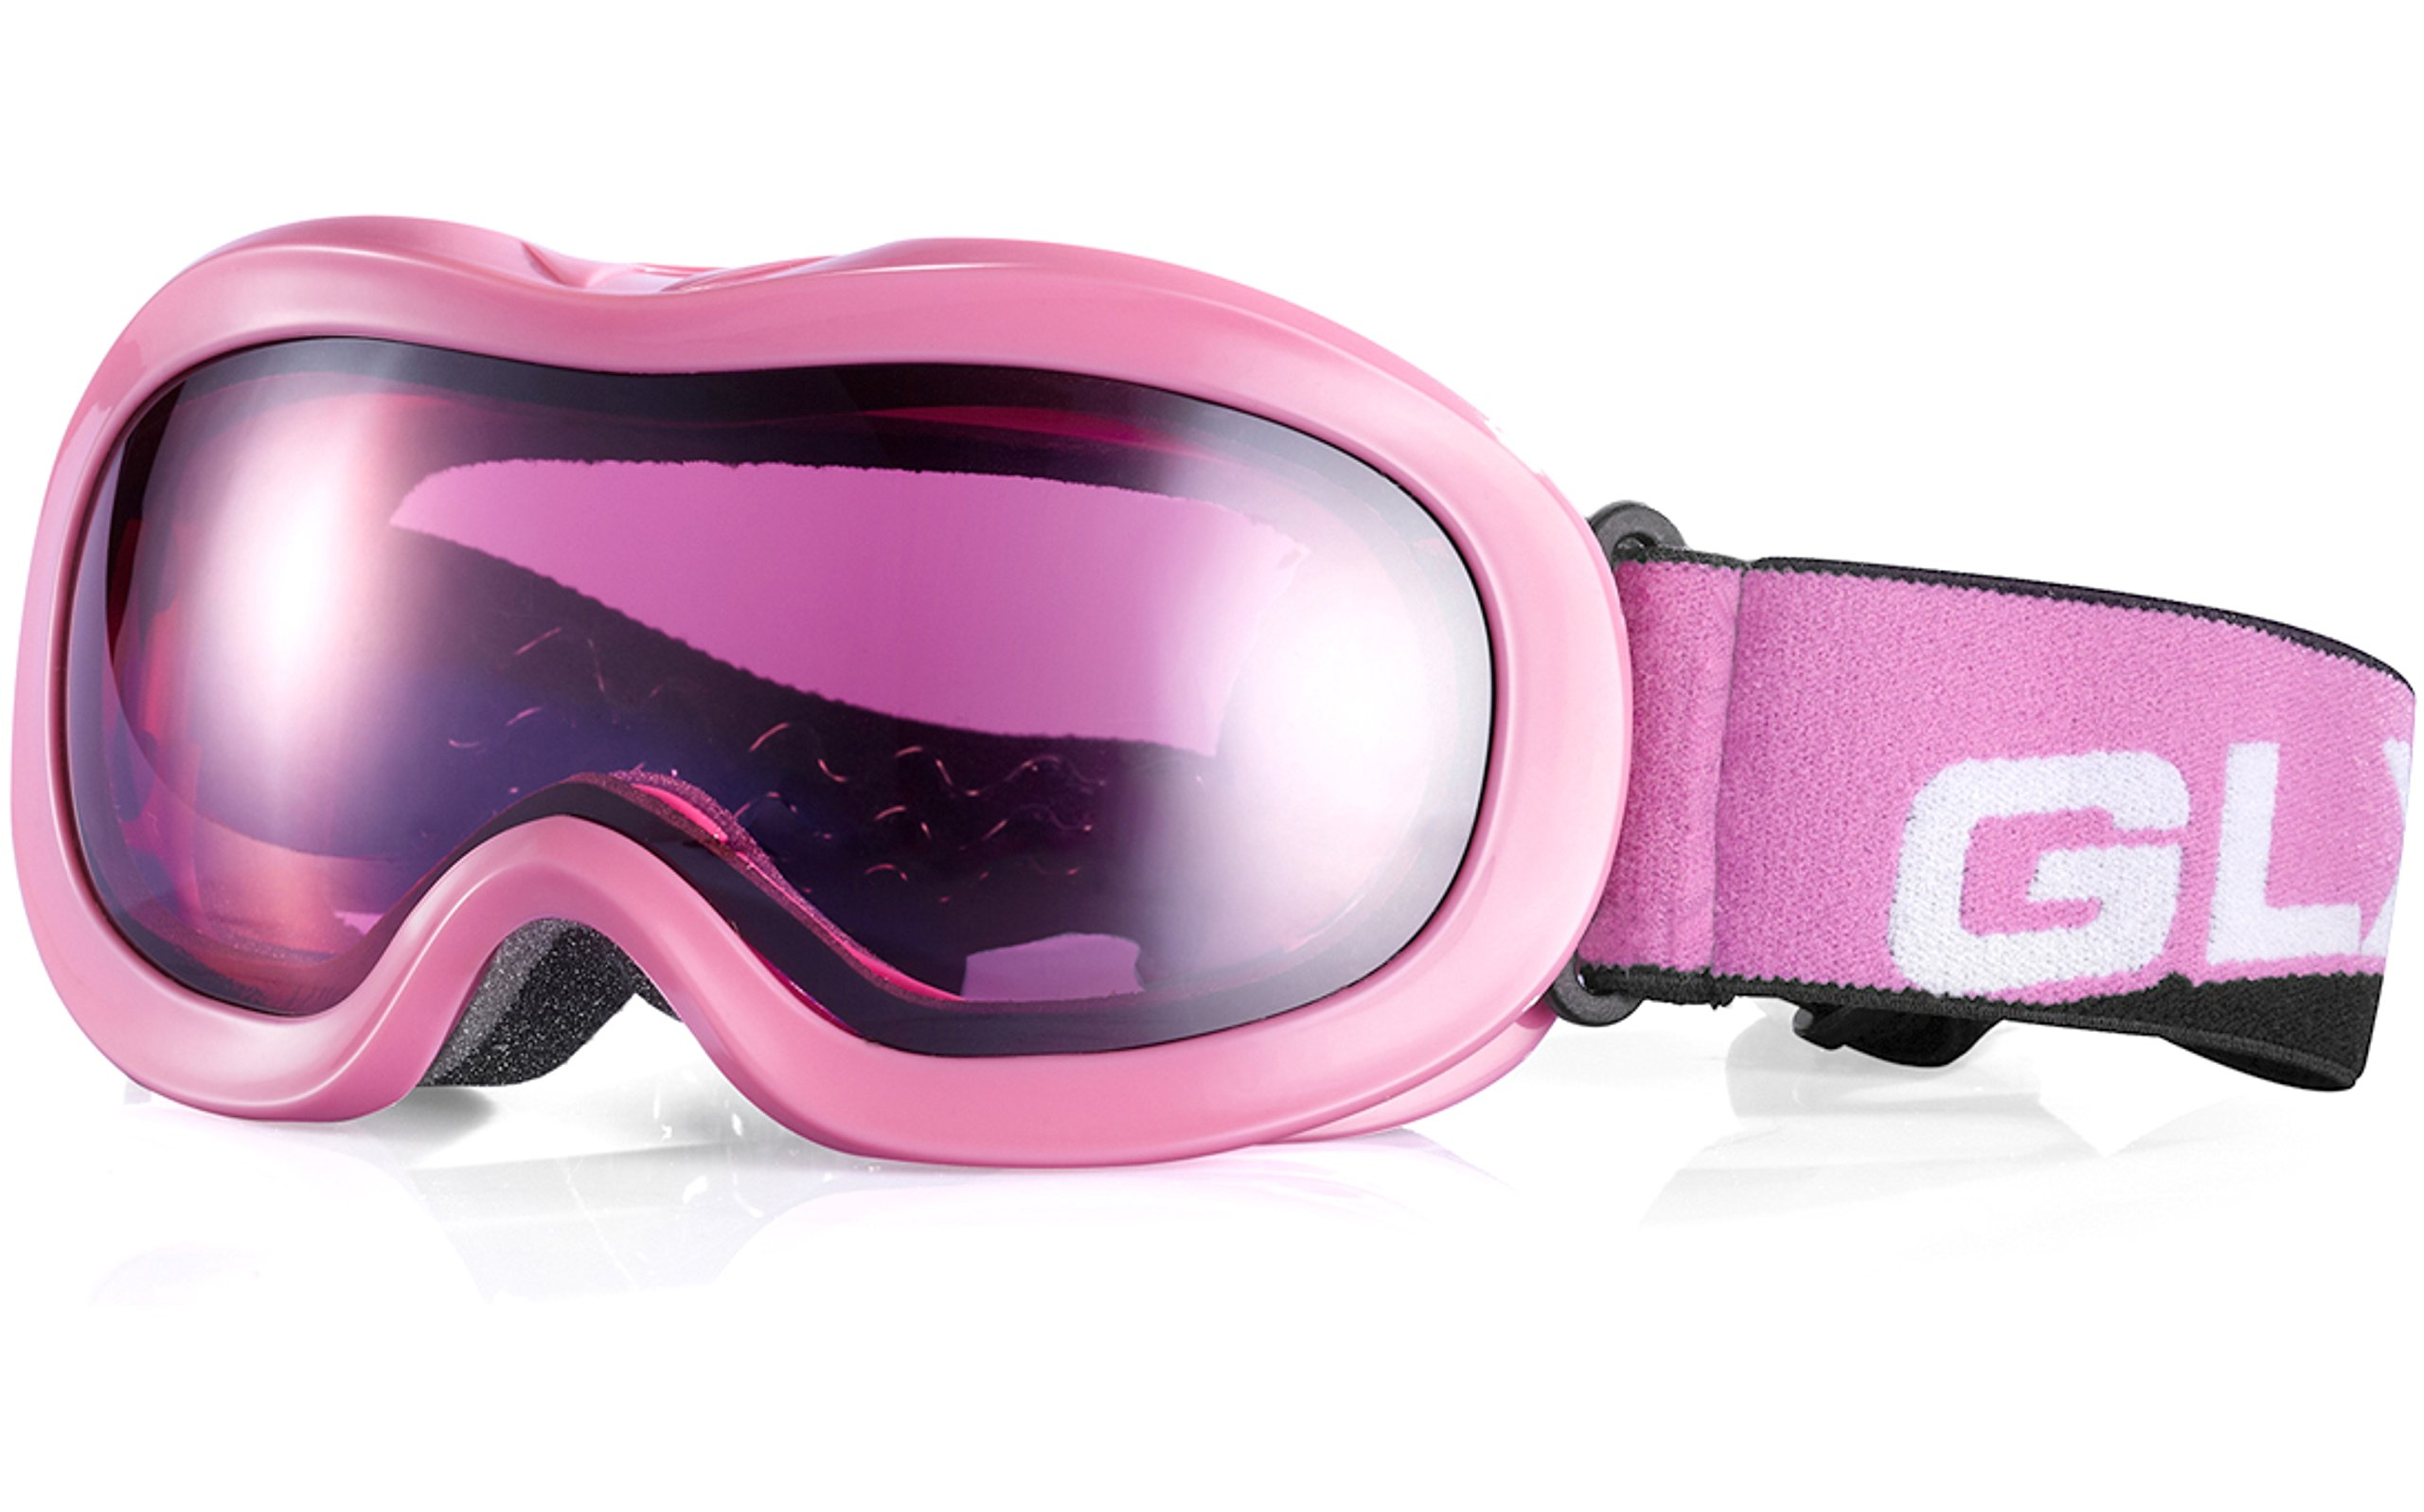 GLX Ski, Snowboard, Snowmobile, Snow, Interchangeable Goggles for Youth Kids Boys Girls UV 400 Protection Helmet Compatible Safe Eyewear